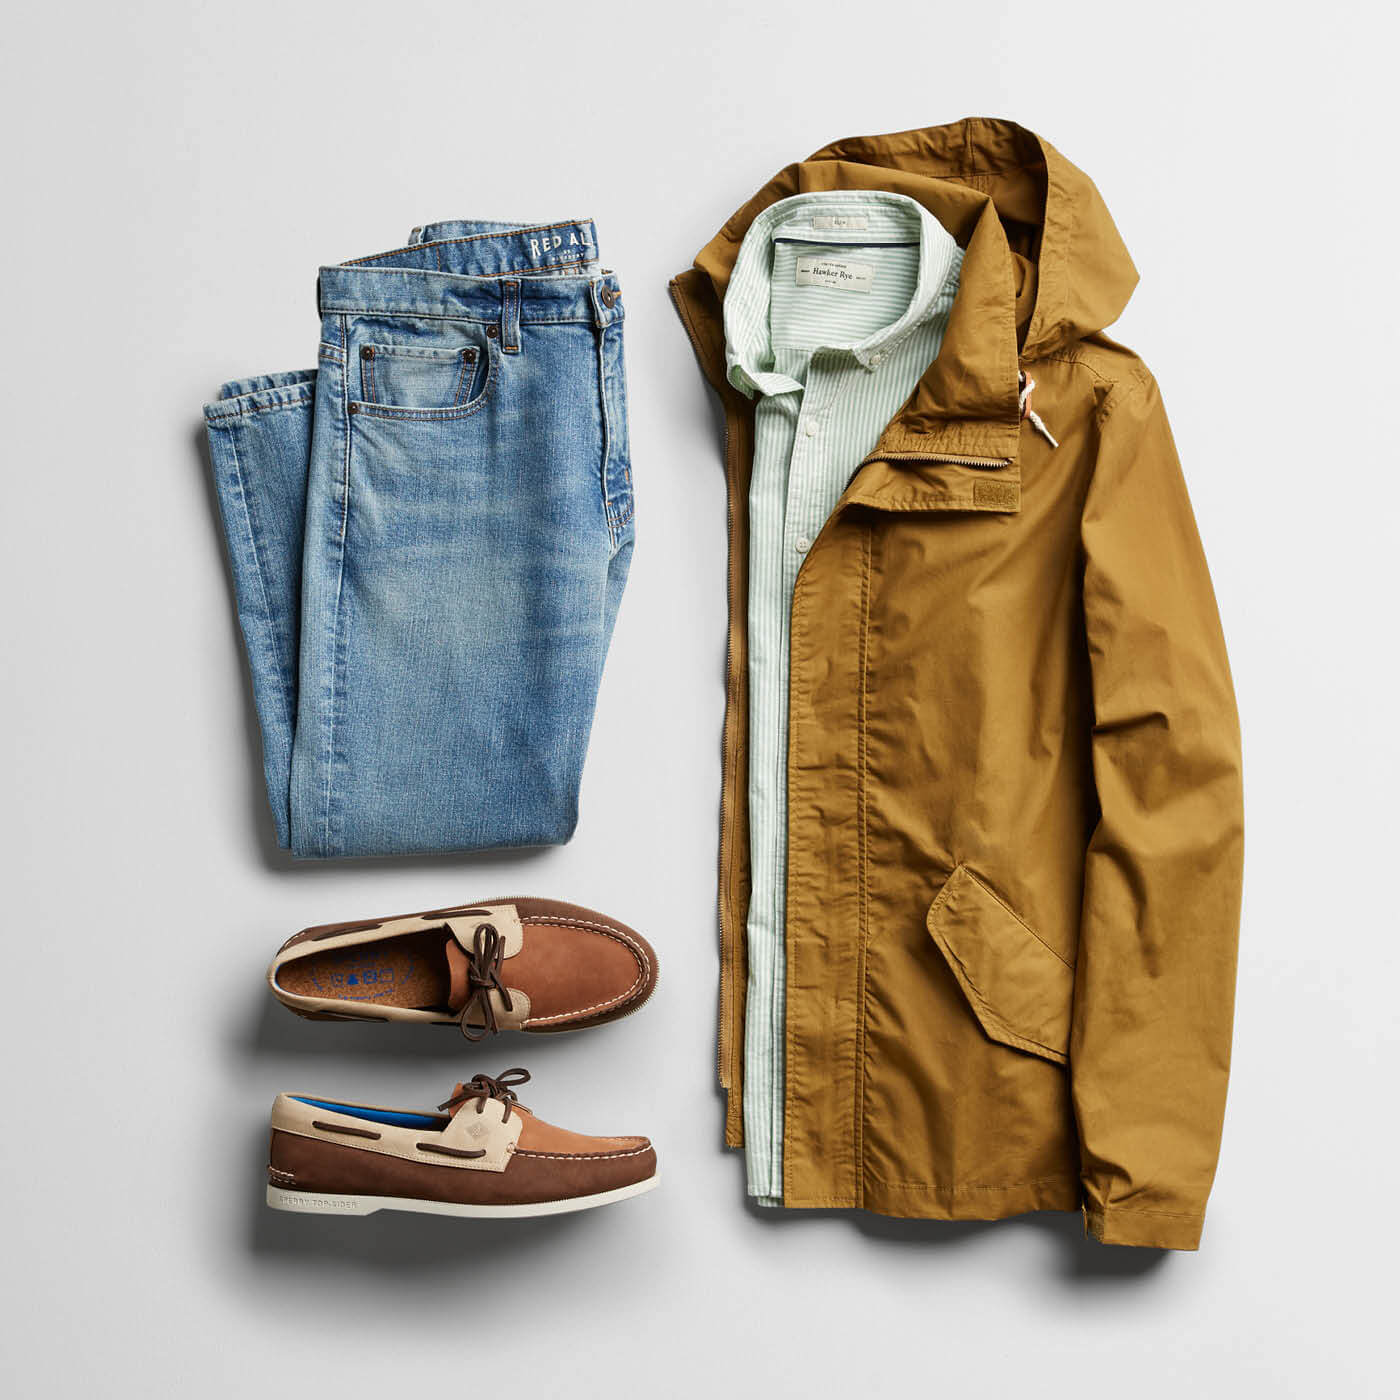 khaki jacket, jeans and boat shoes